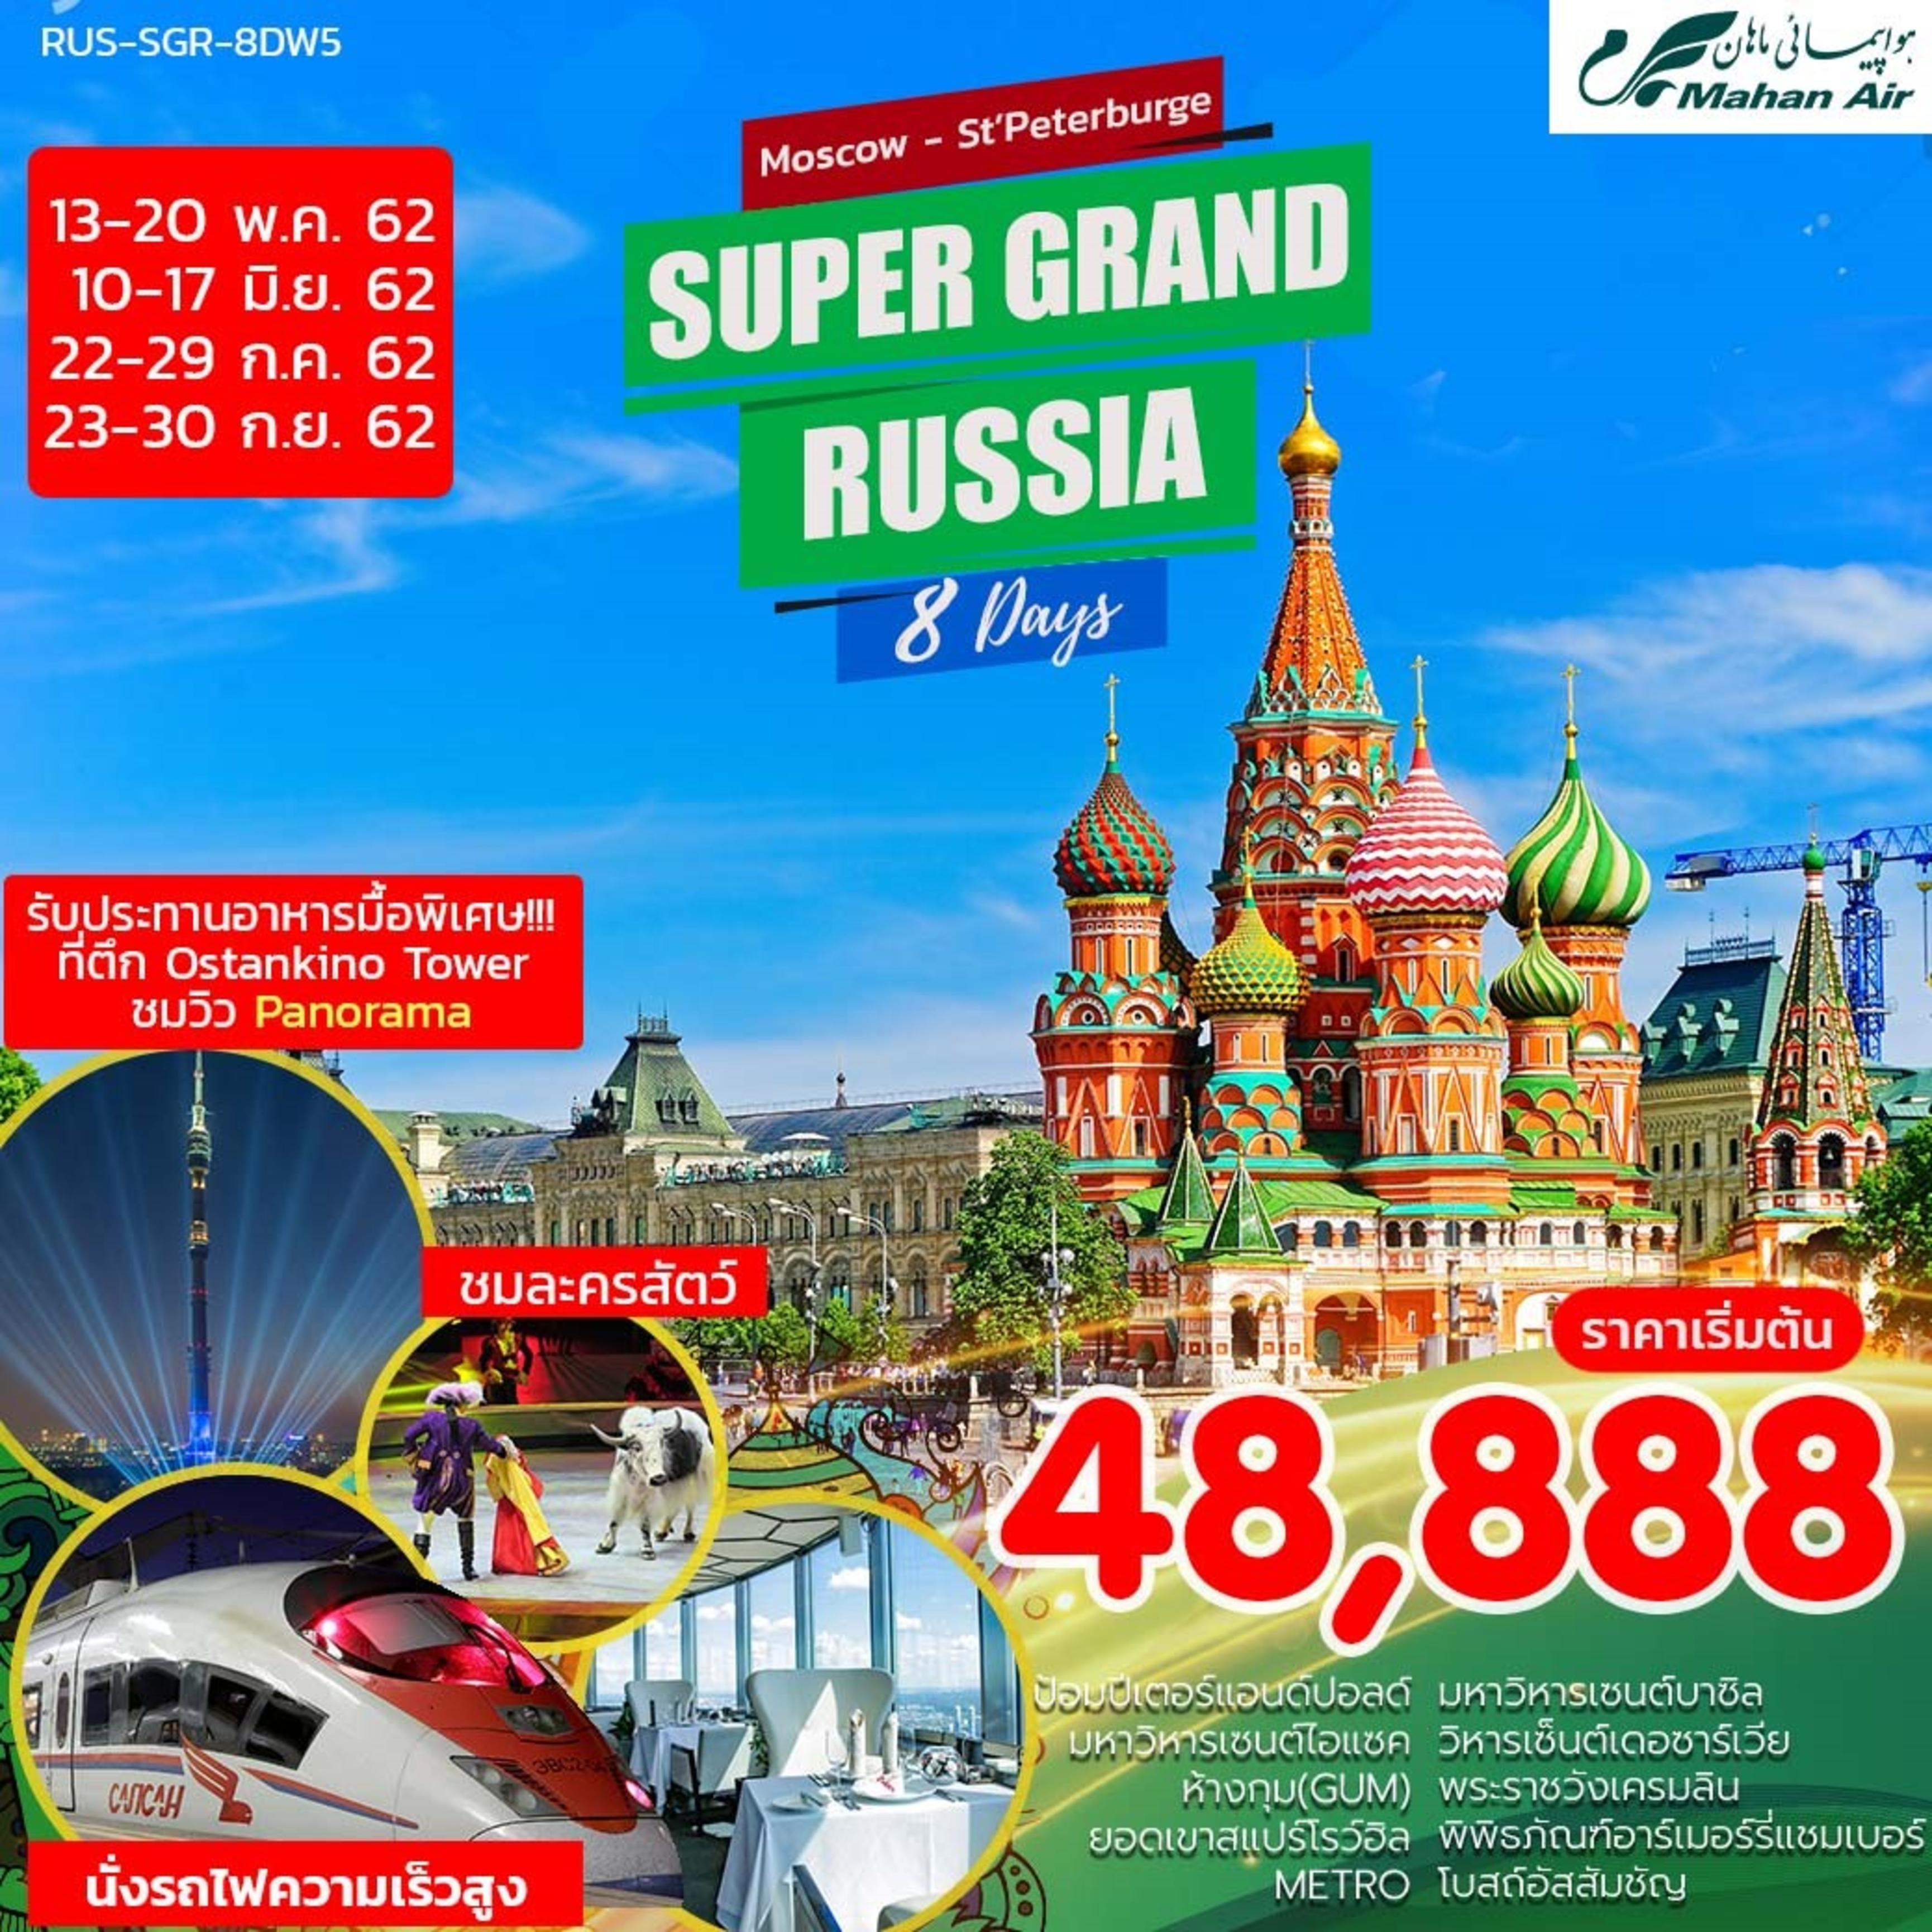 CIRCUS SUPER GRAND RUSSIA (MOSCOW- ST.PETER) MAY-SEP 19 UPDATE18MAR19